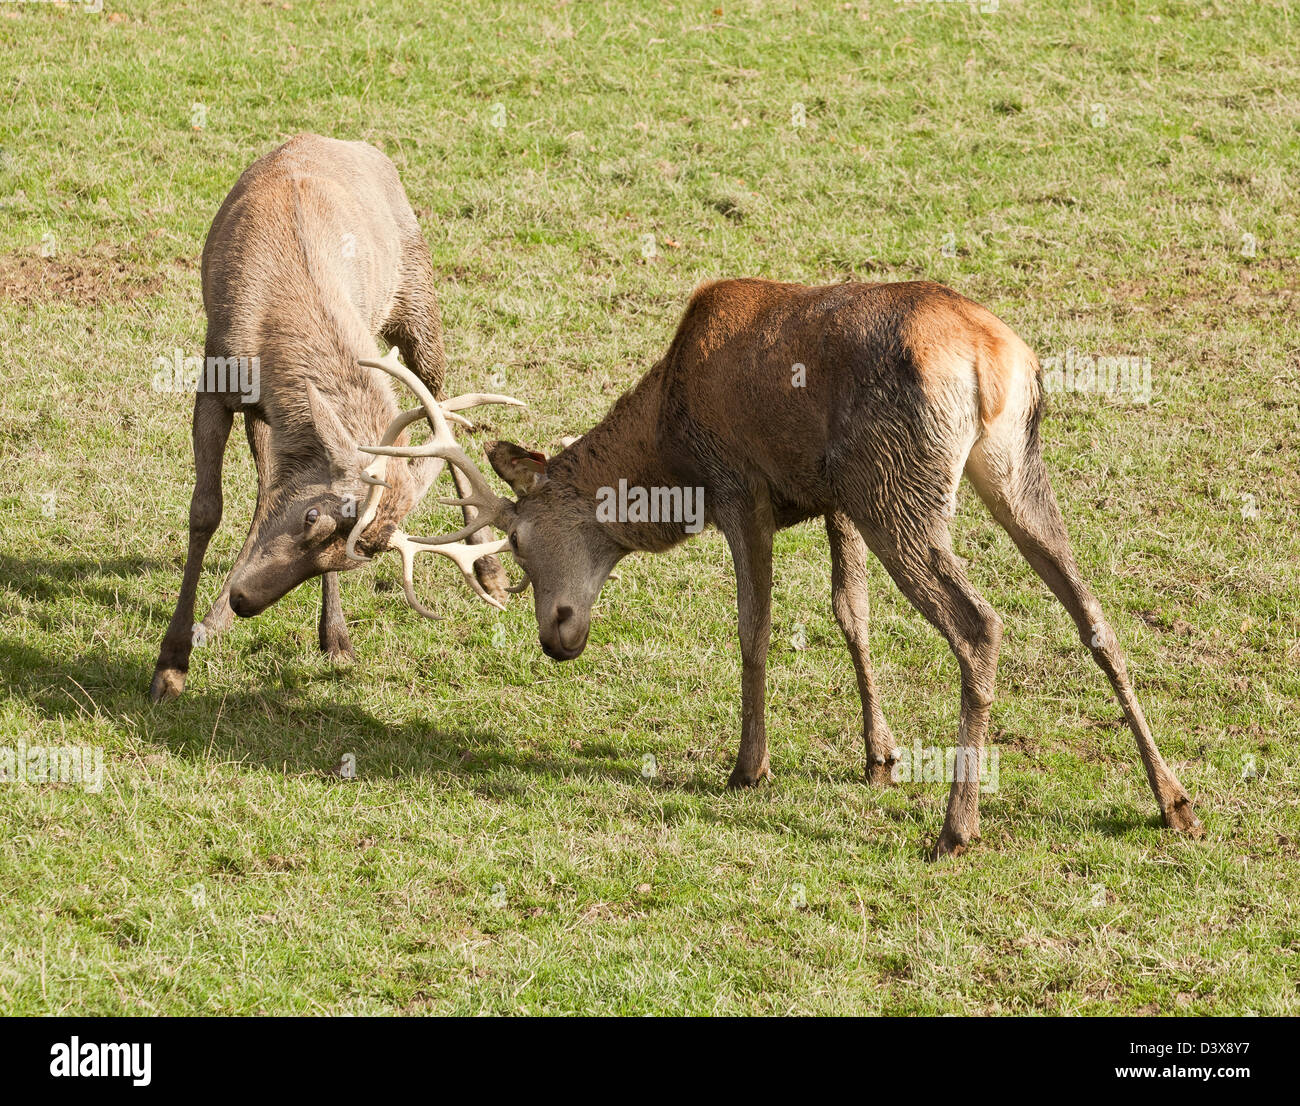 Two stags interlocking antlers in a fight - Stock Image